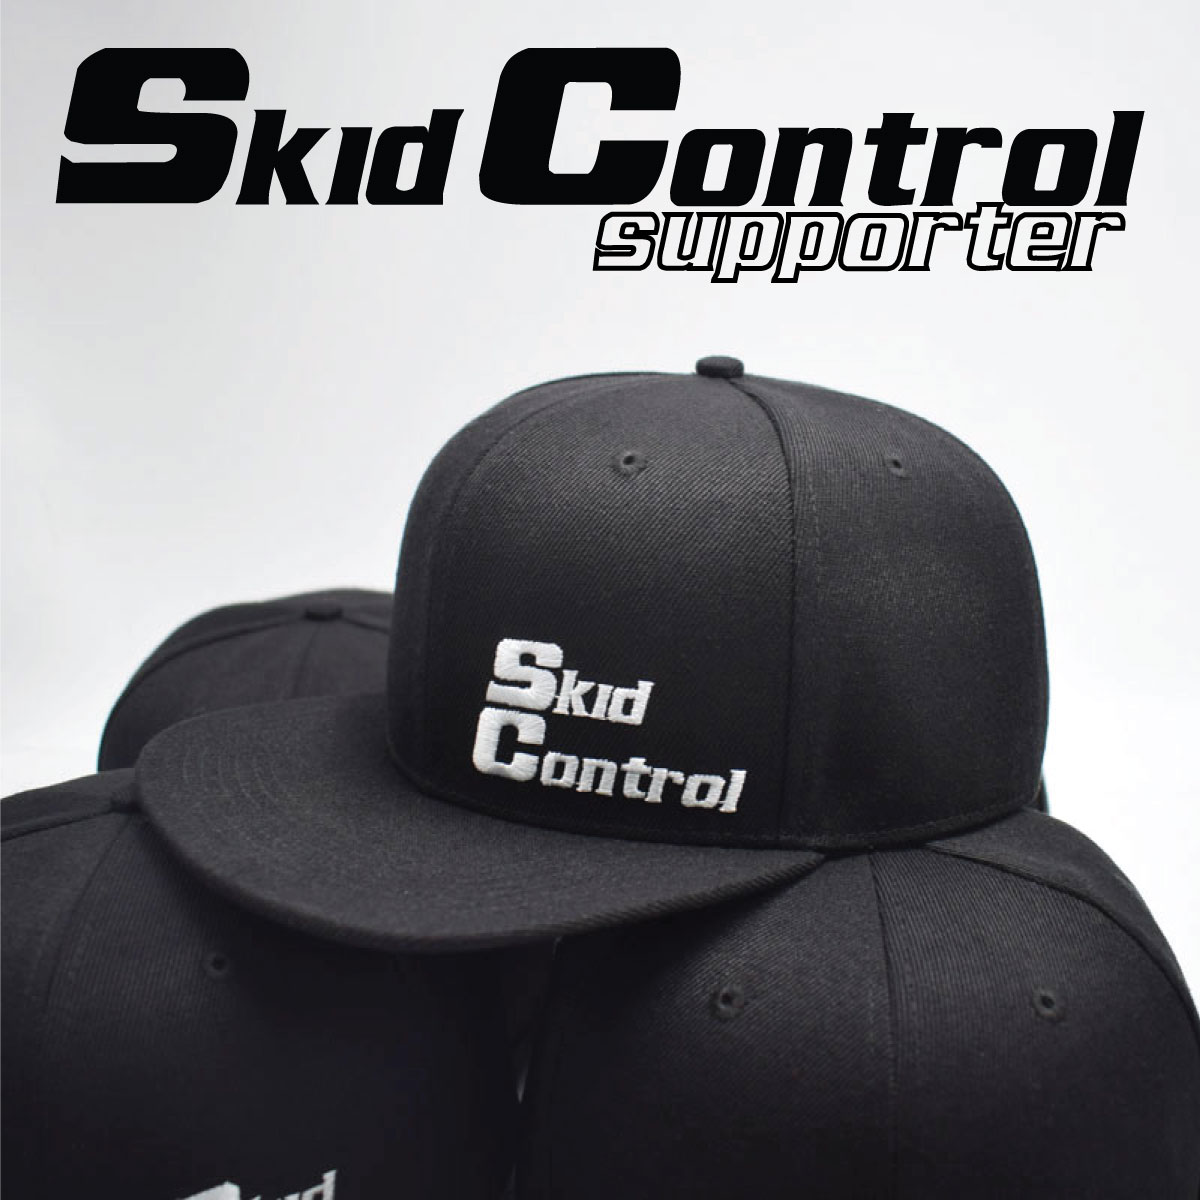 Skid Control Supporter